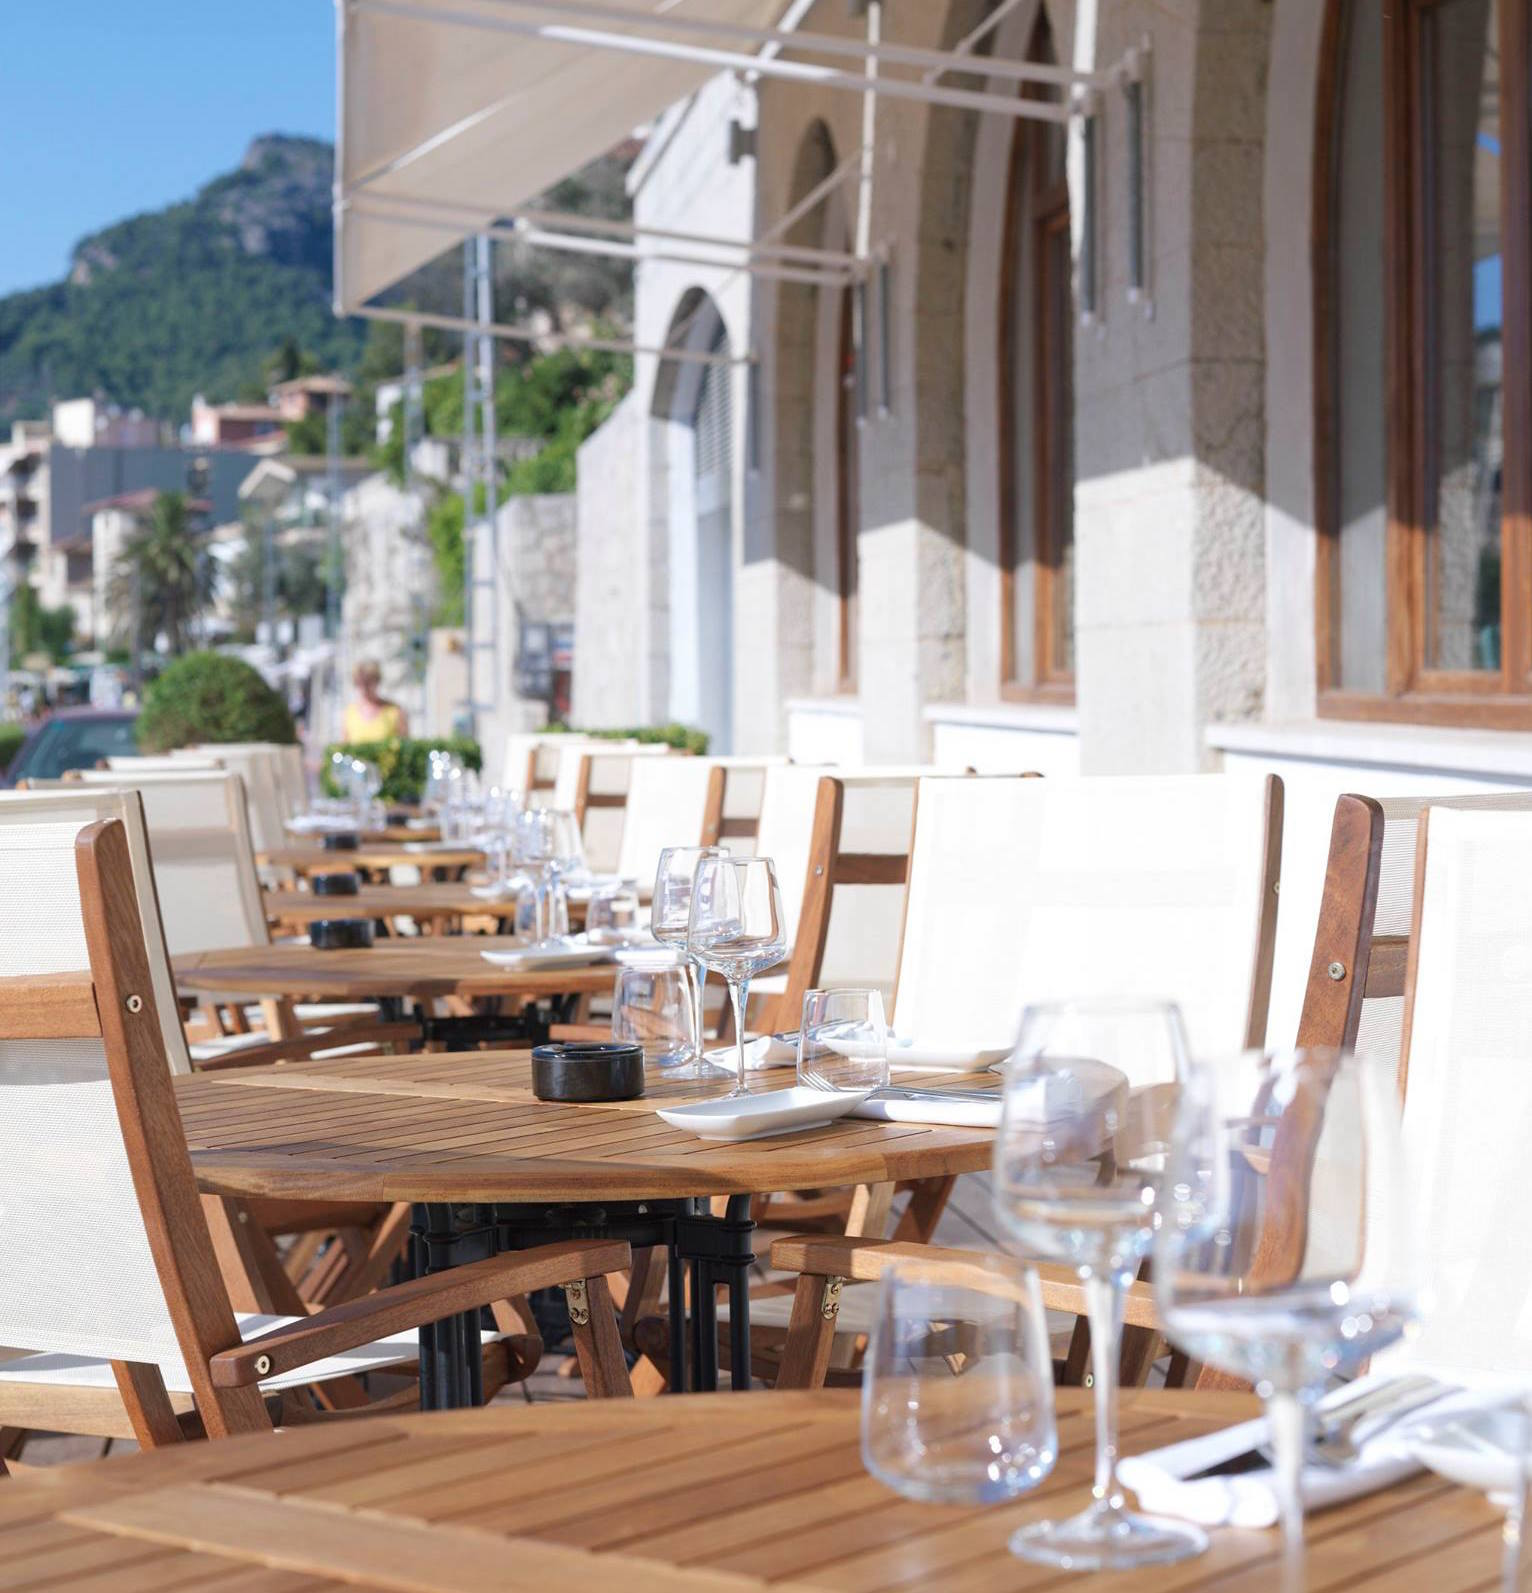 Lunch on the terrace at Esplendido Hotel   Special Offers MallorcanTonic